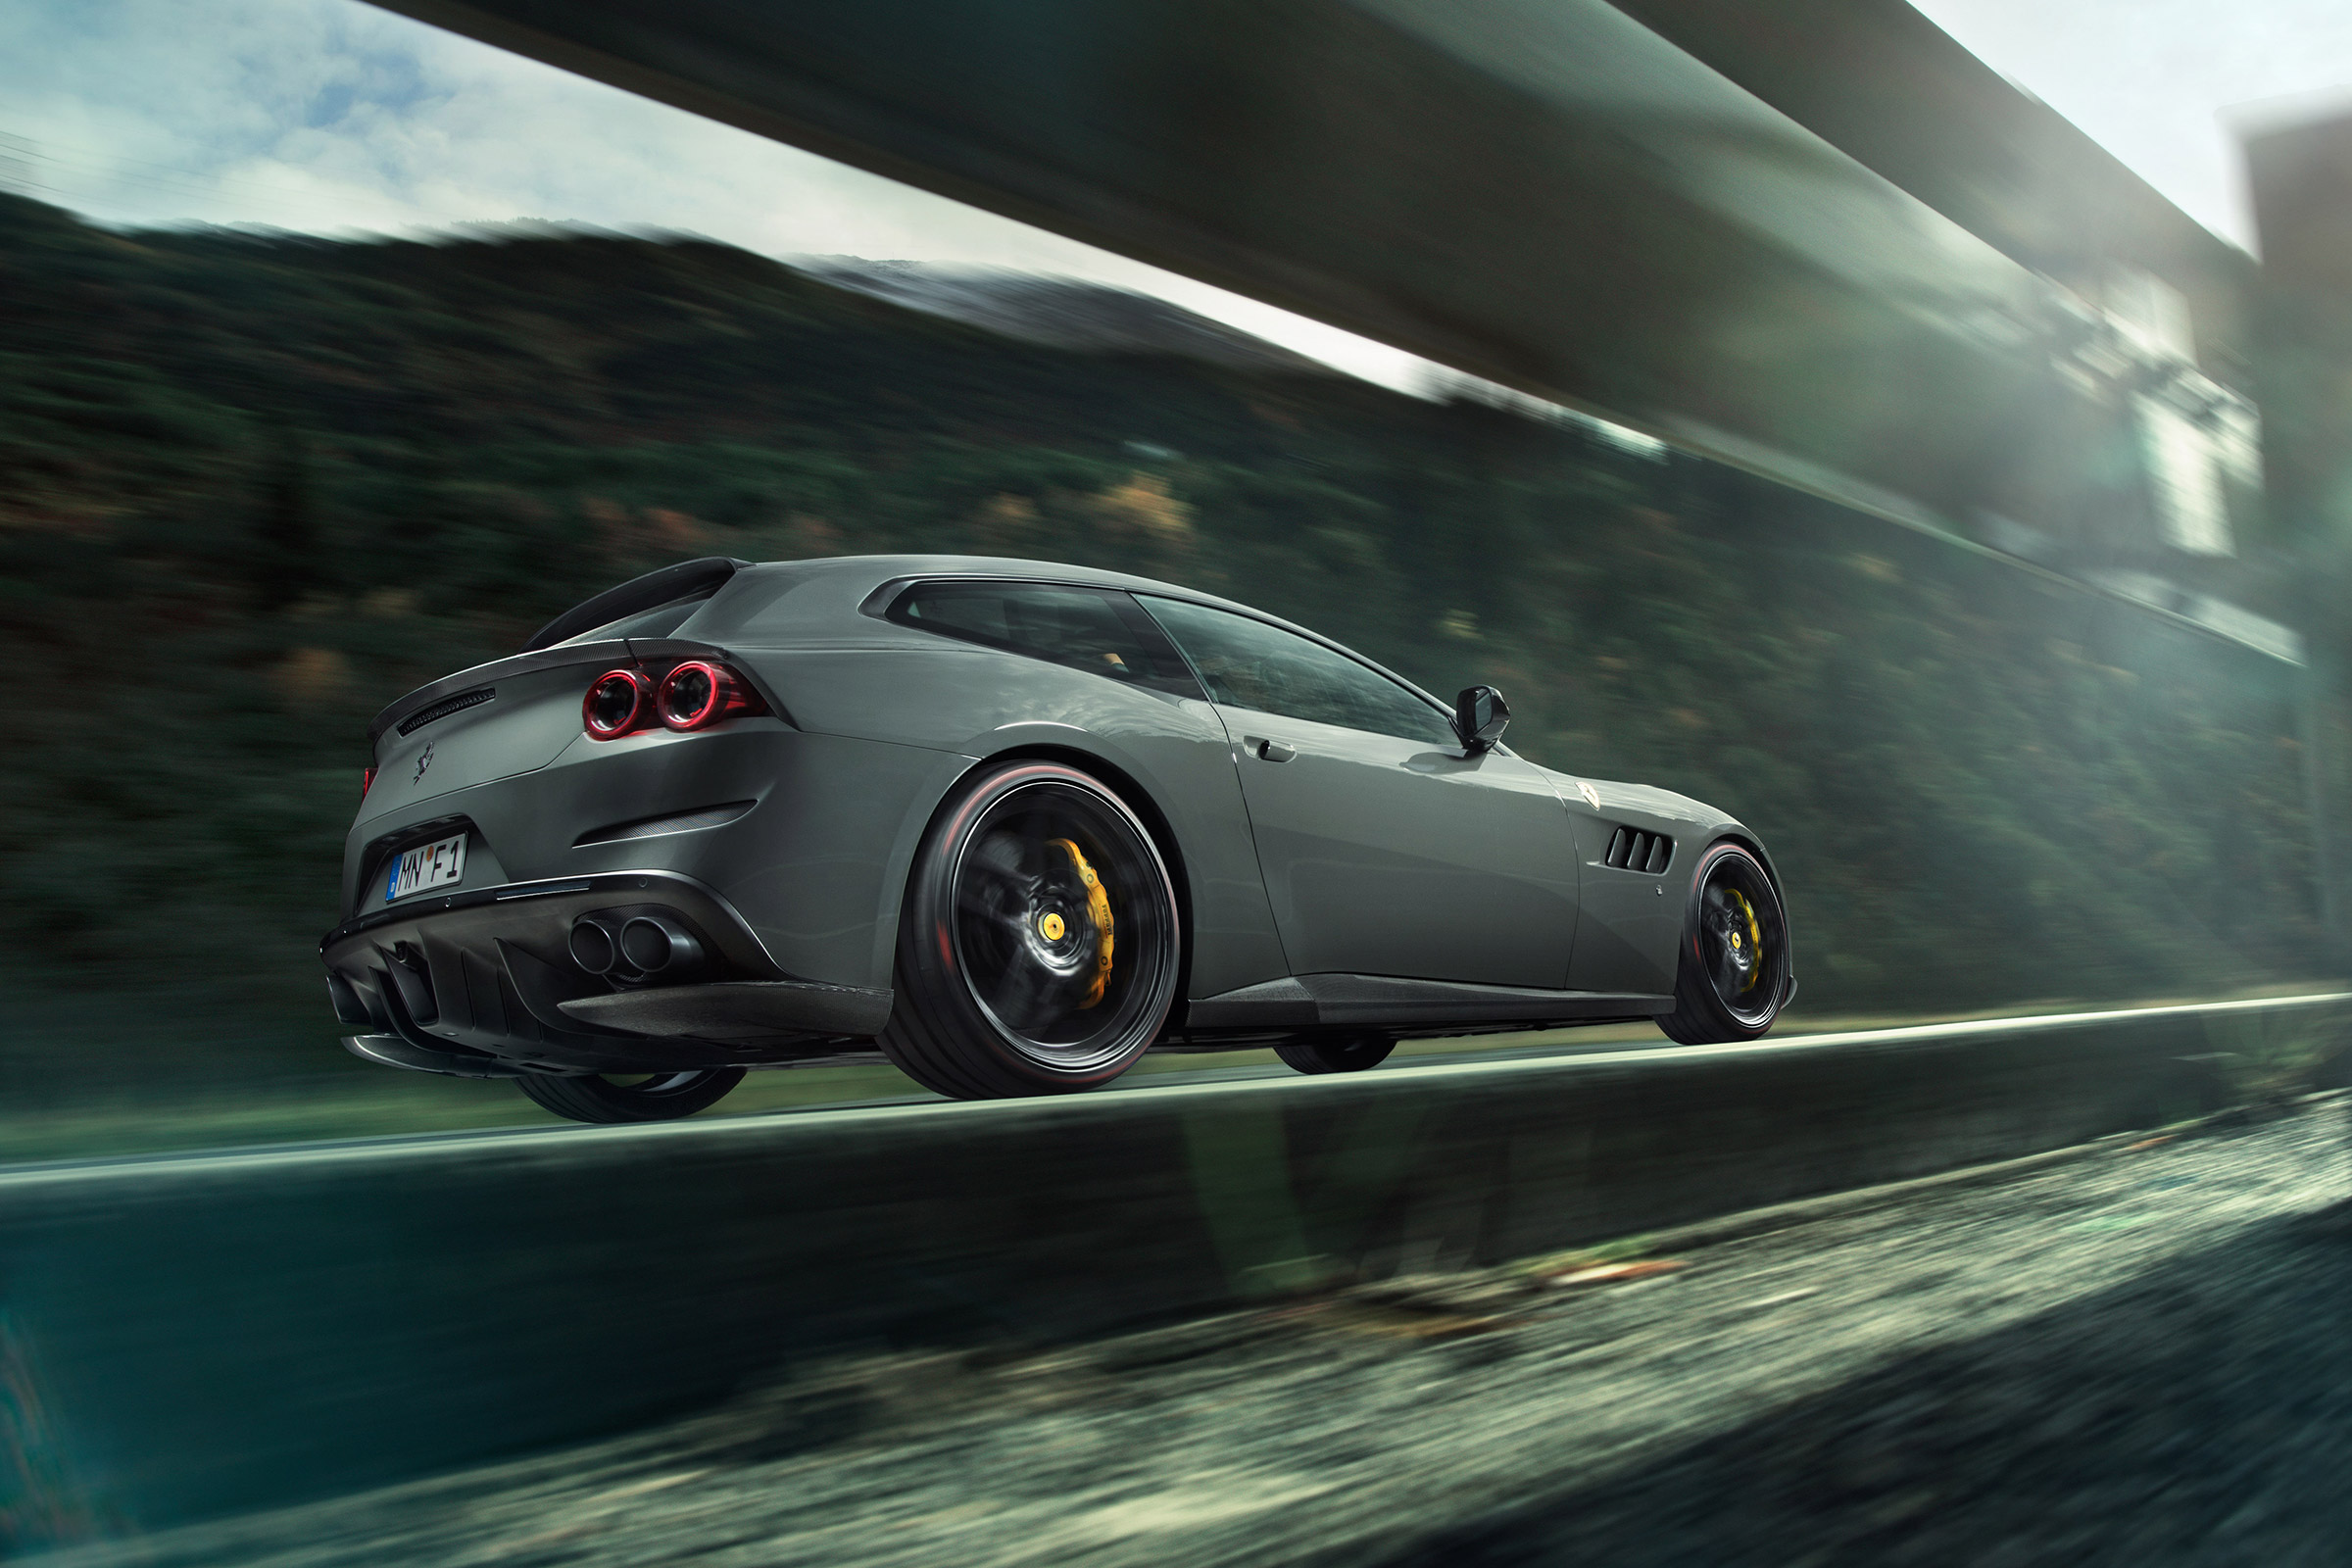 Ferrari Gtc4lusso Review The Ultimate In Practicality And